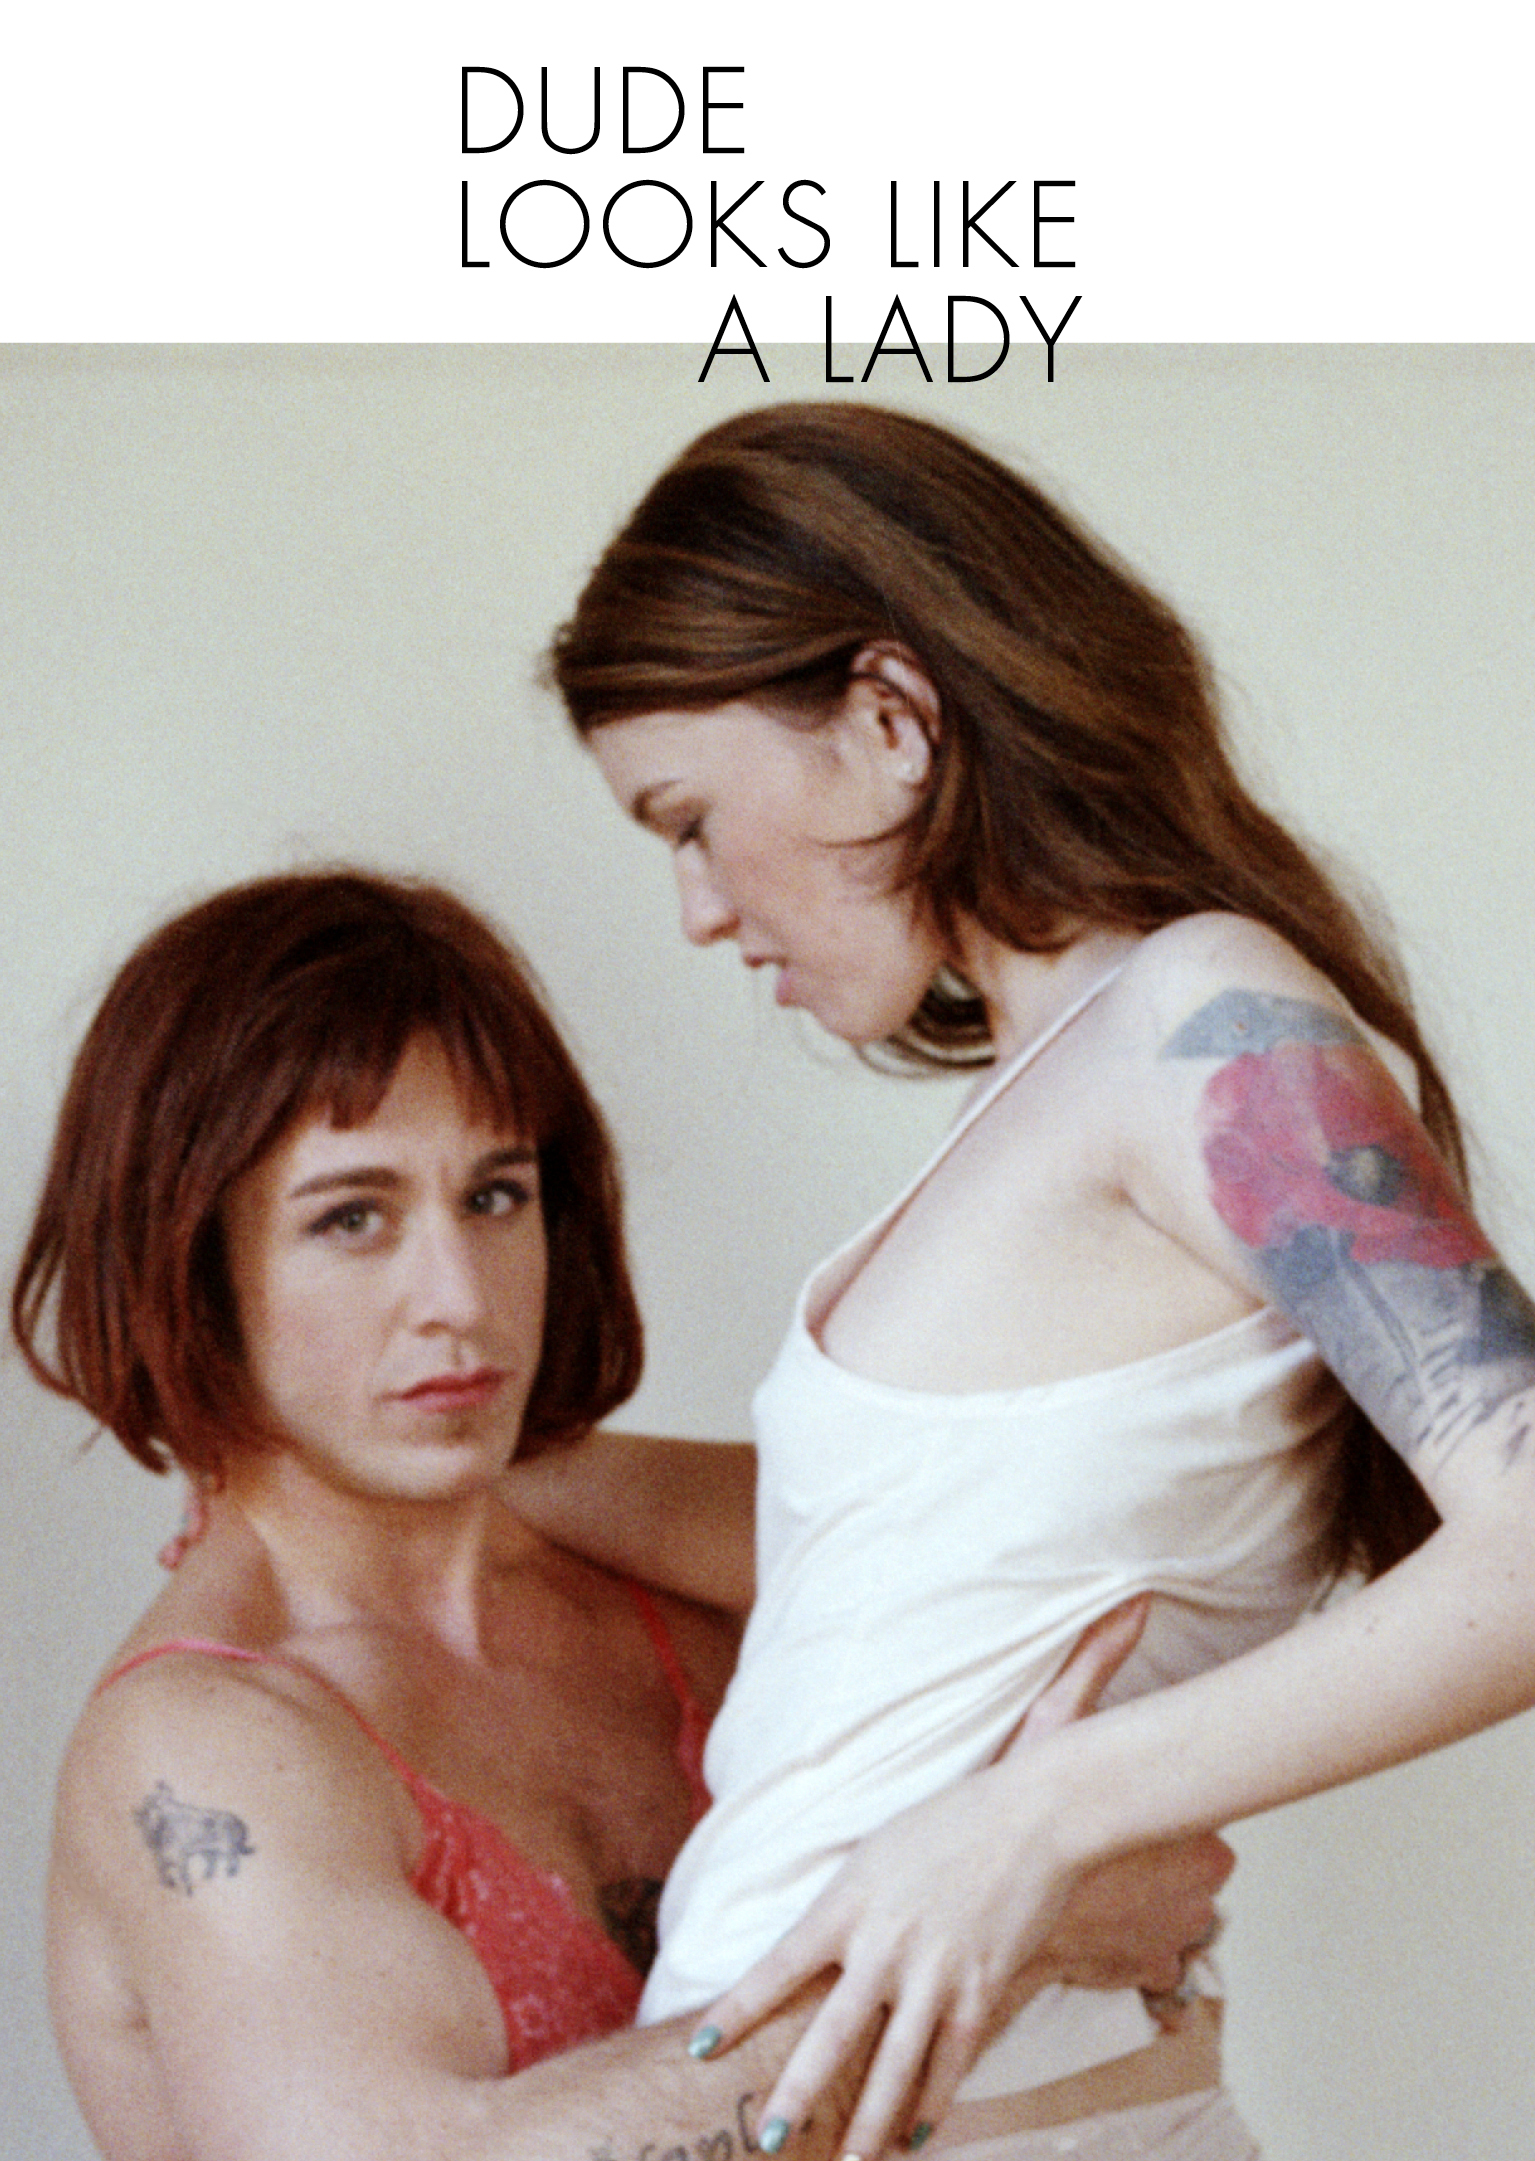 Xconfessions By Erika Lust, Dude Looks Like A Lady